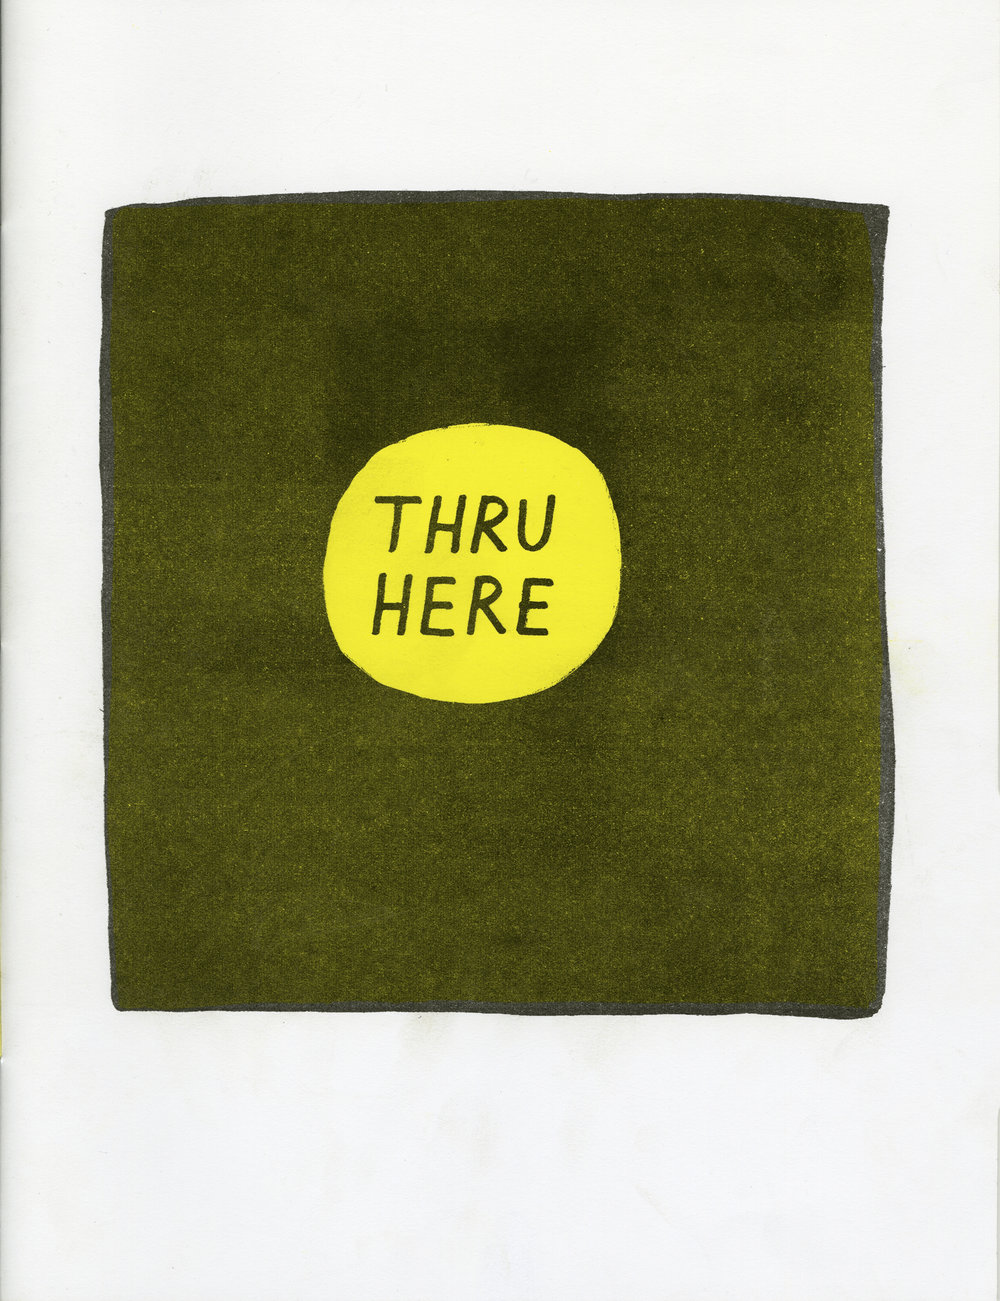 thruhere-cover2500.jpg